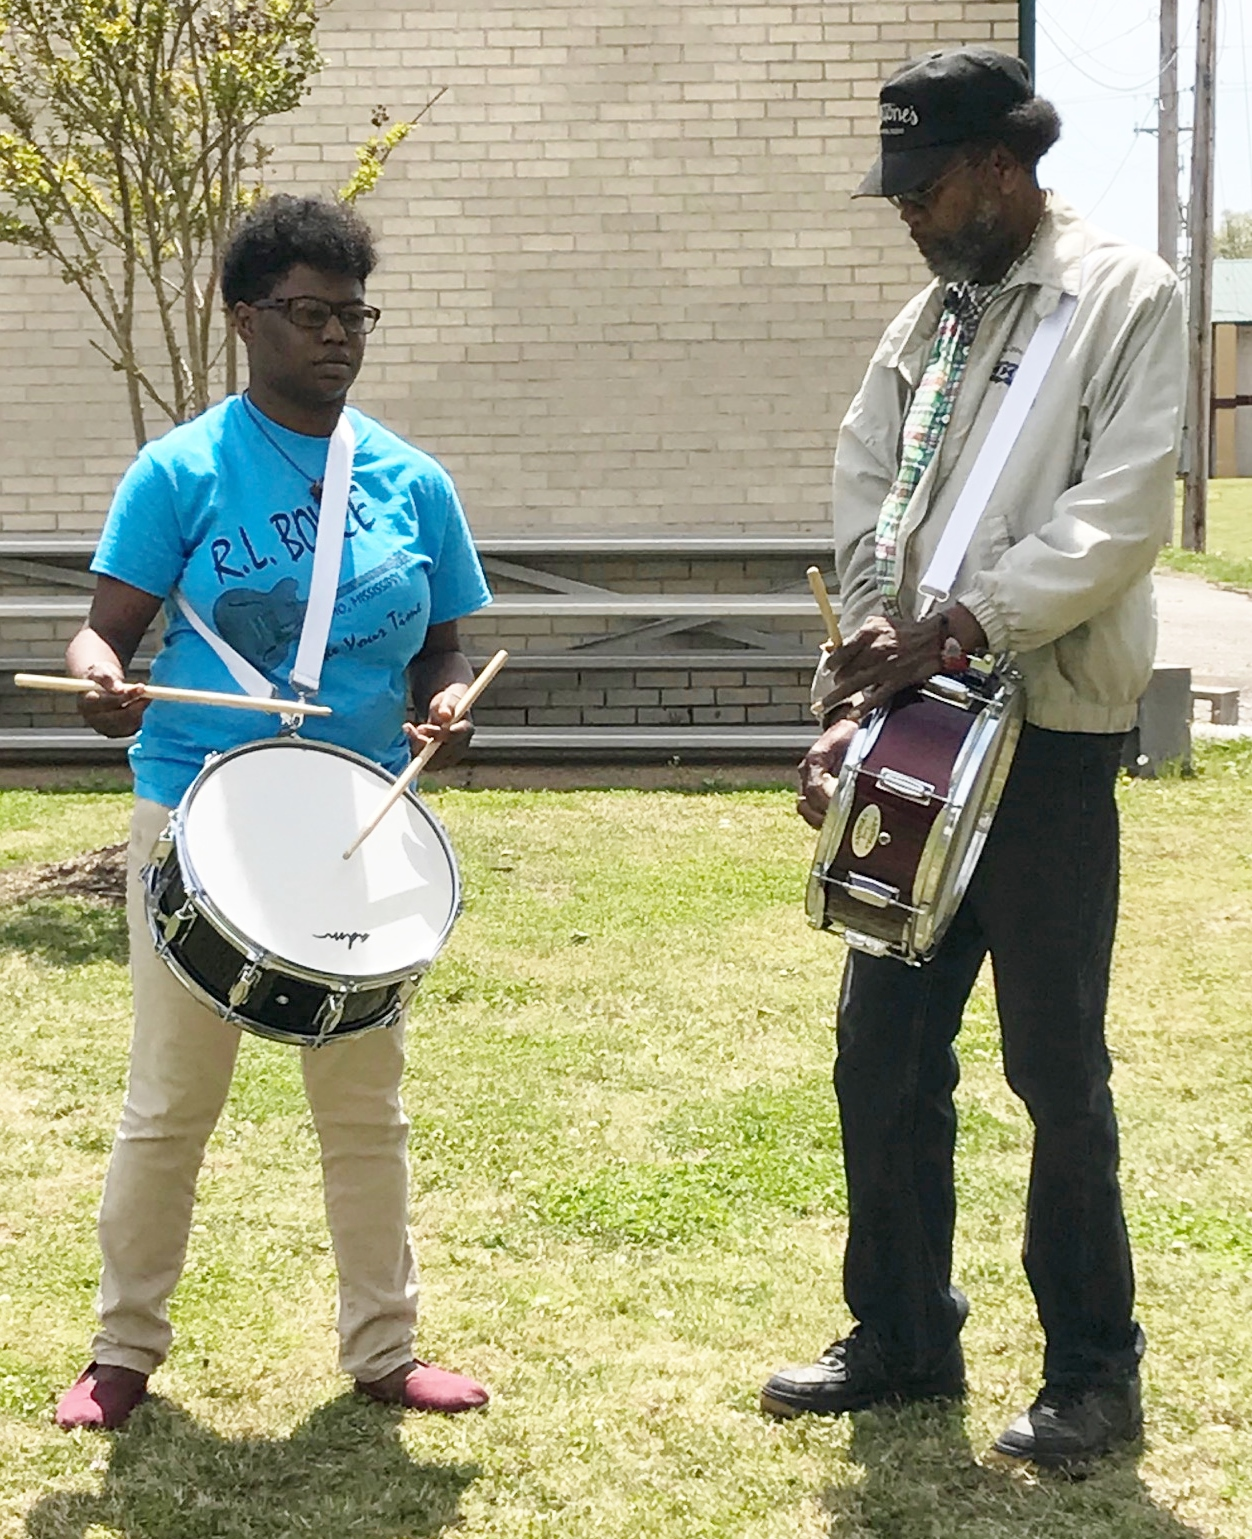 Grammy-nominated Bluesman RL Boyce teaches student Kesha Burton the fife and drum traditions during a recent lesson at the Delta Heritage Center in Brownsville. Boyce and Burton are a part of the Tennessee Arts Commission Apprenticeship Program that pairs a master with a student in an effort to pass on knowledge of traditional art forms to a new generation.